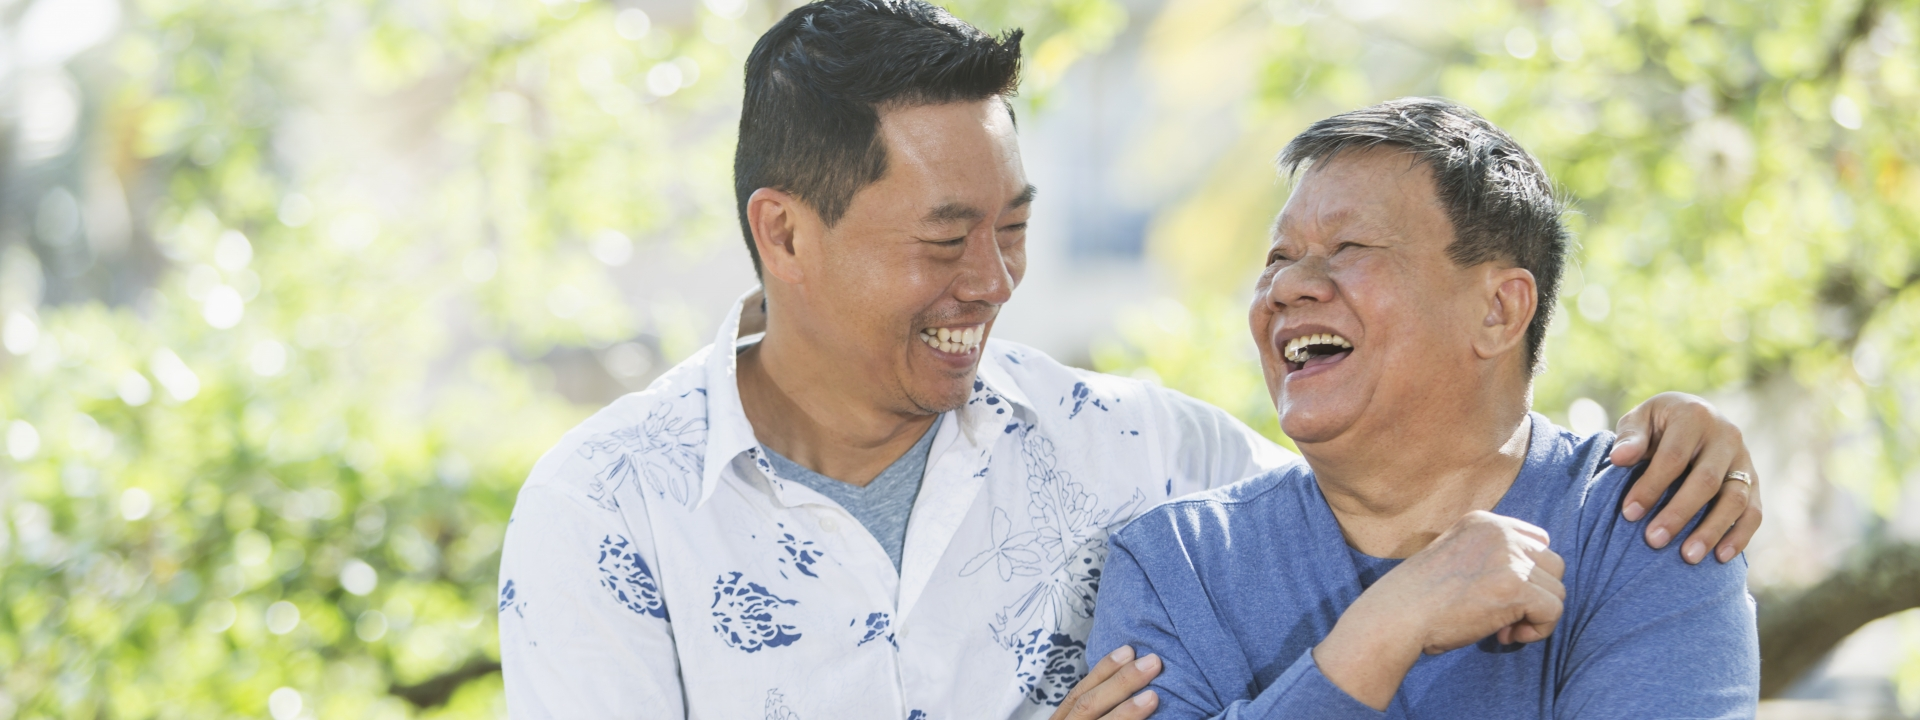 Senior Asian man and adult son laughing together